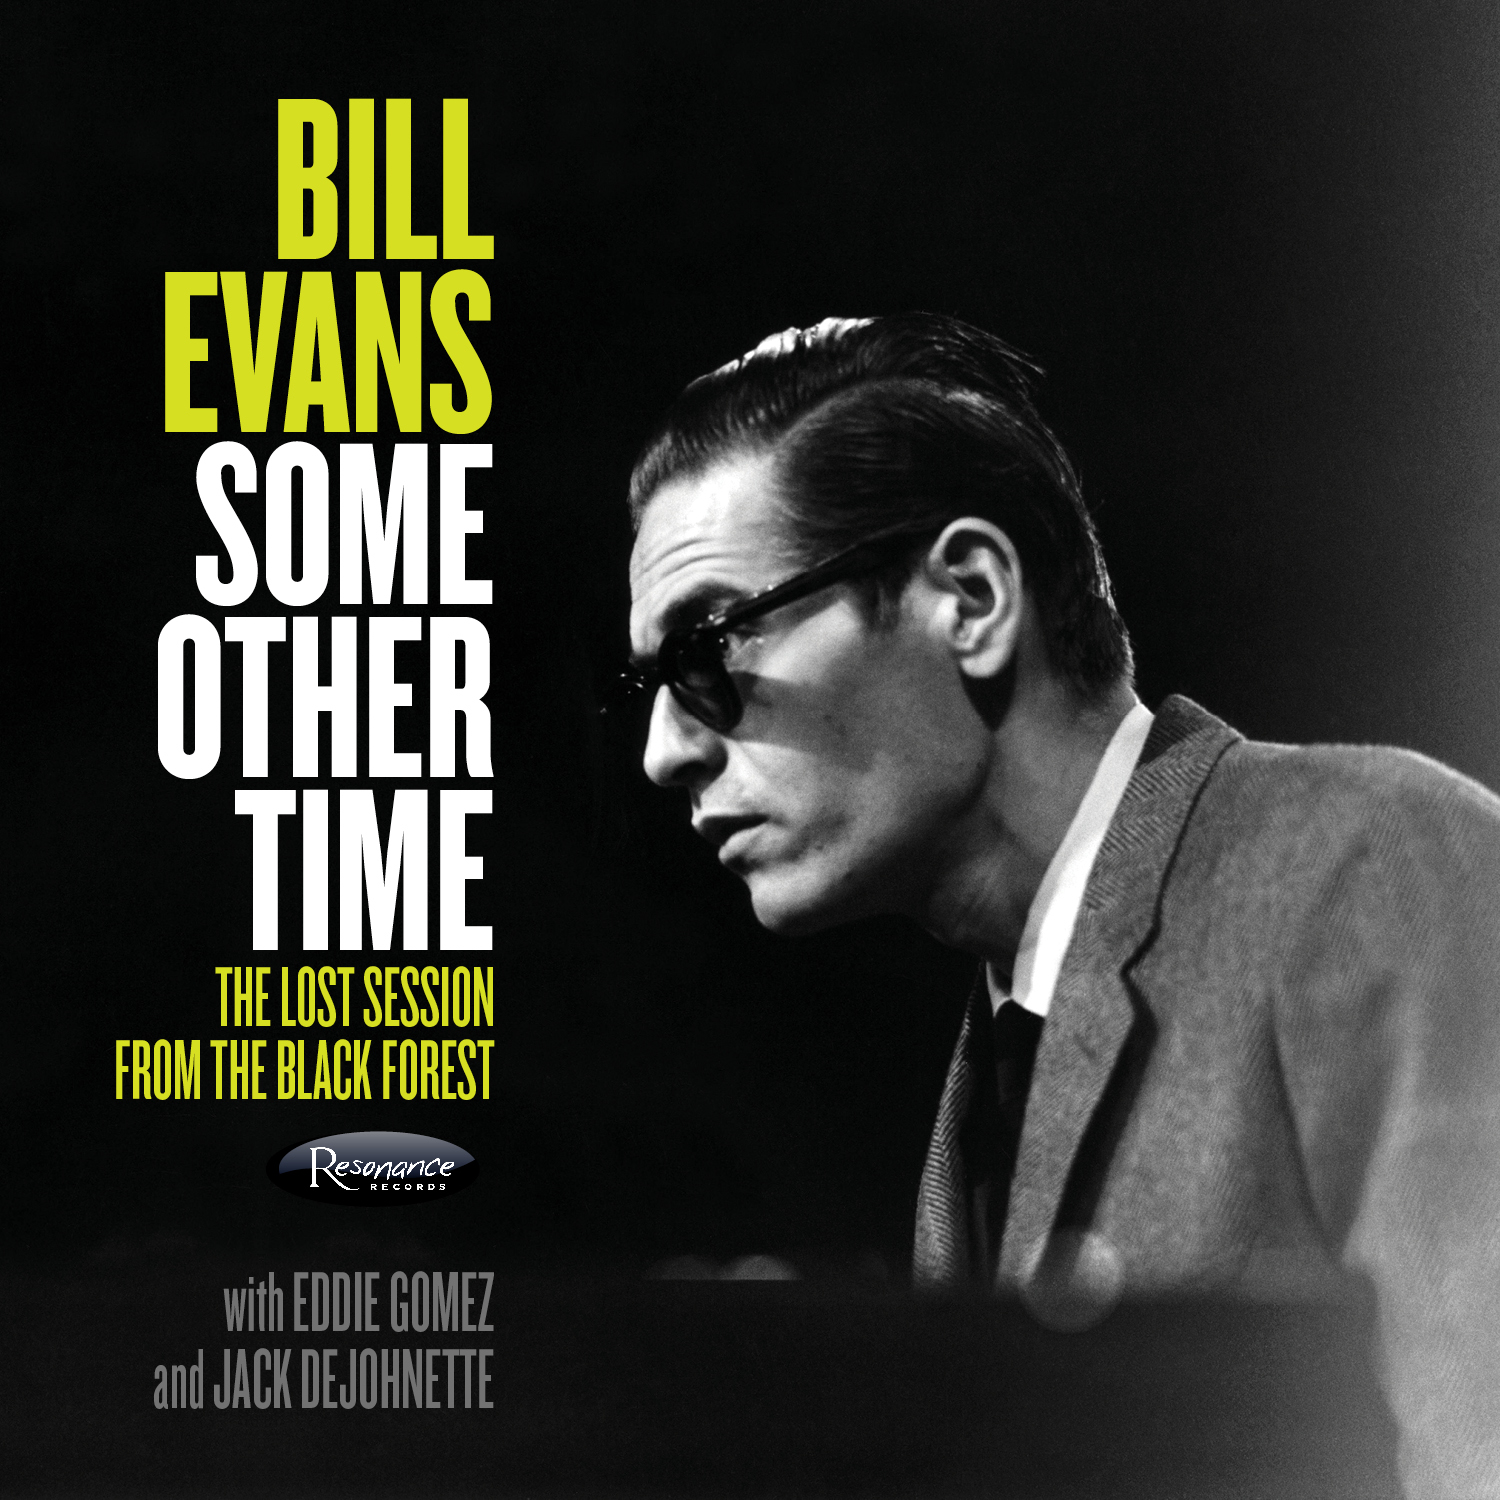 PIC 2 Bill Evans Some Other Time